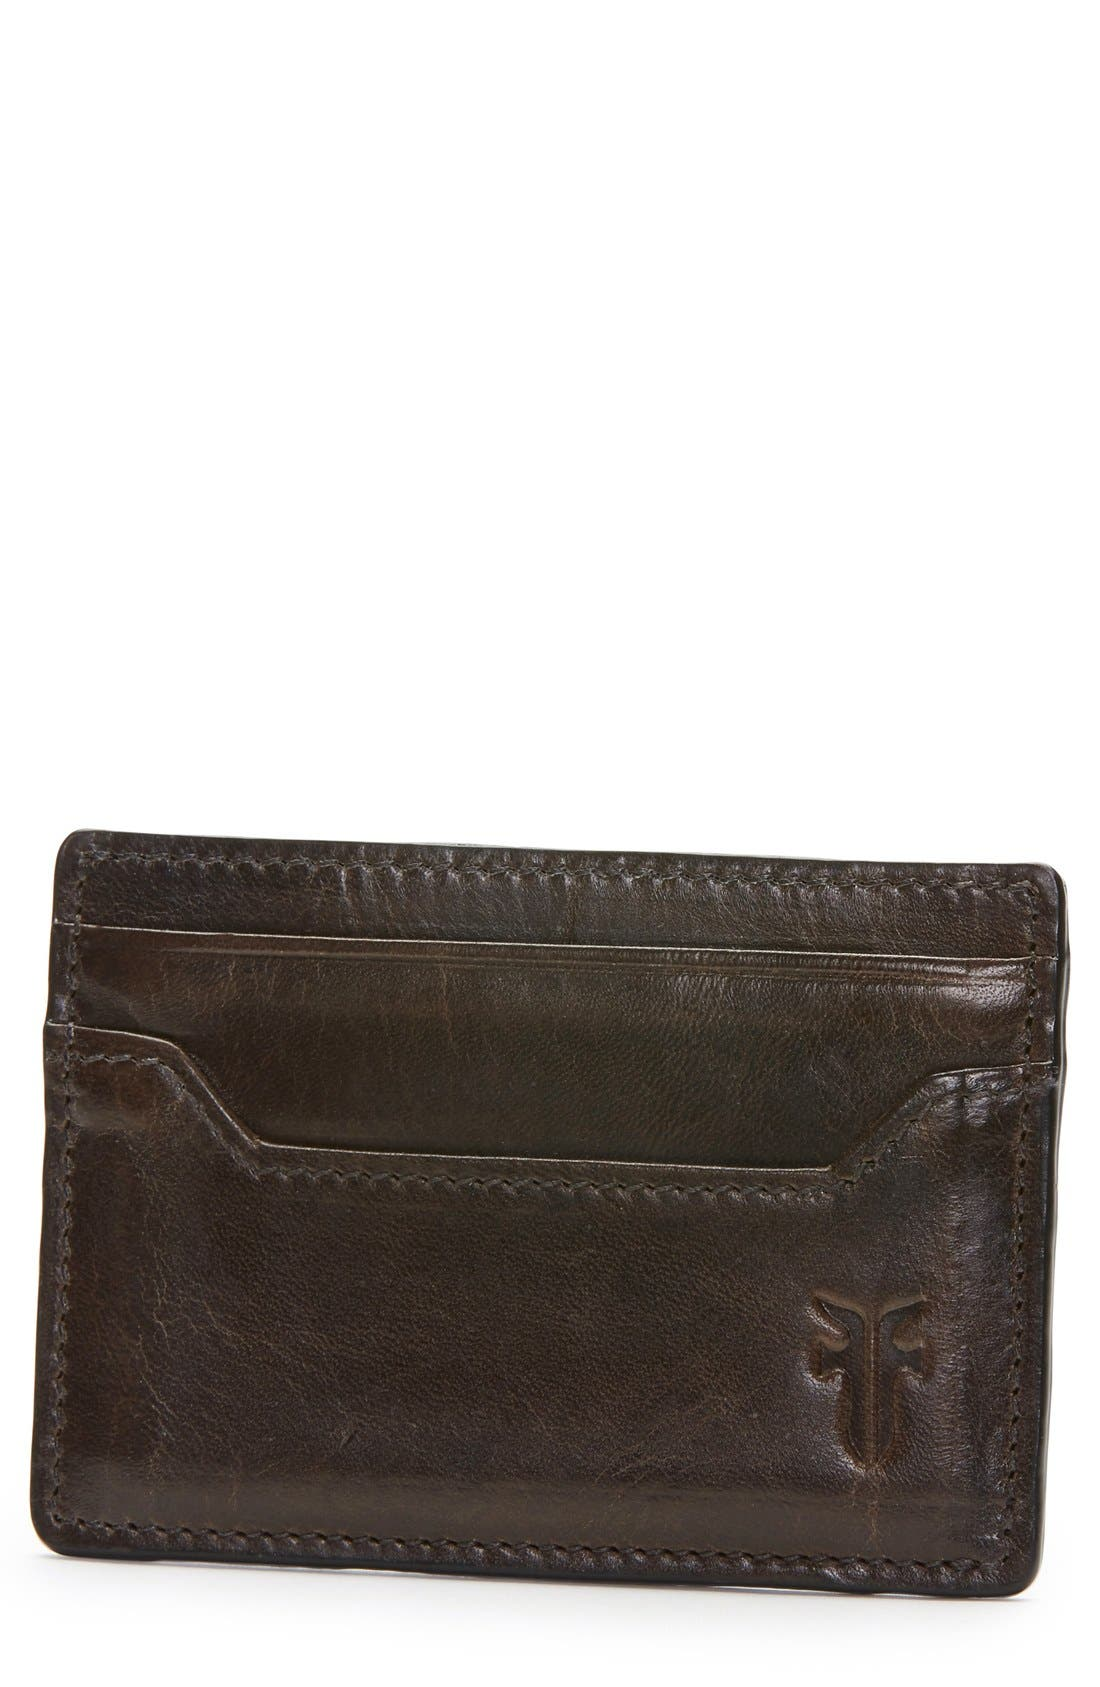 Frye 'Logan' Leather Card Holder